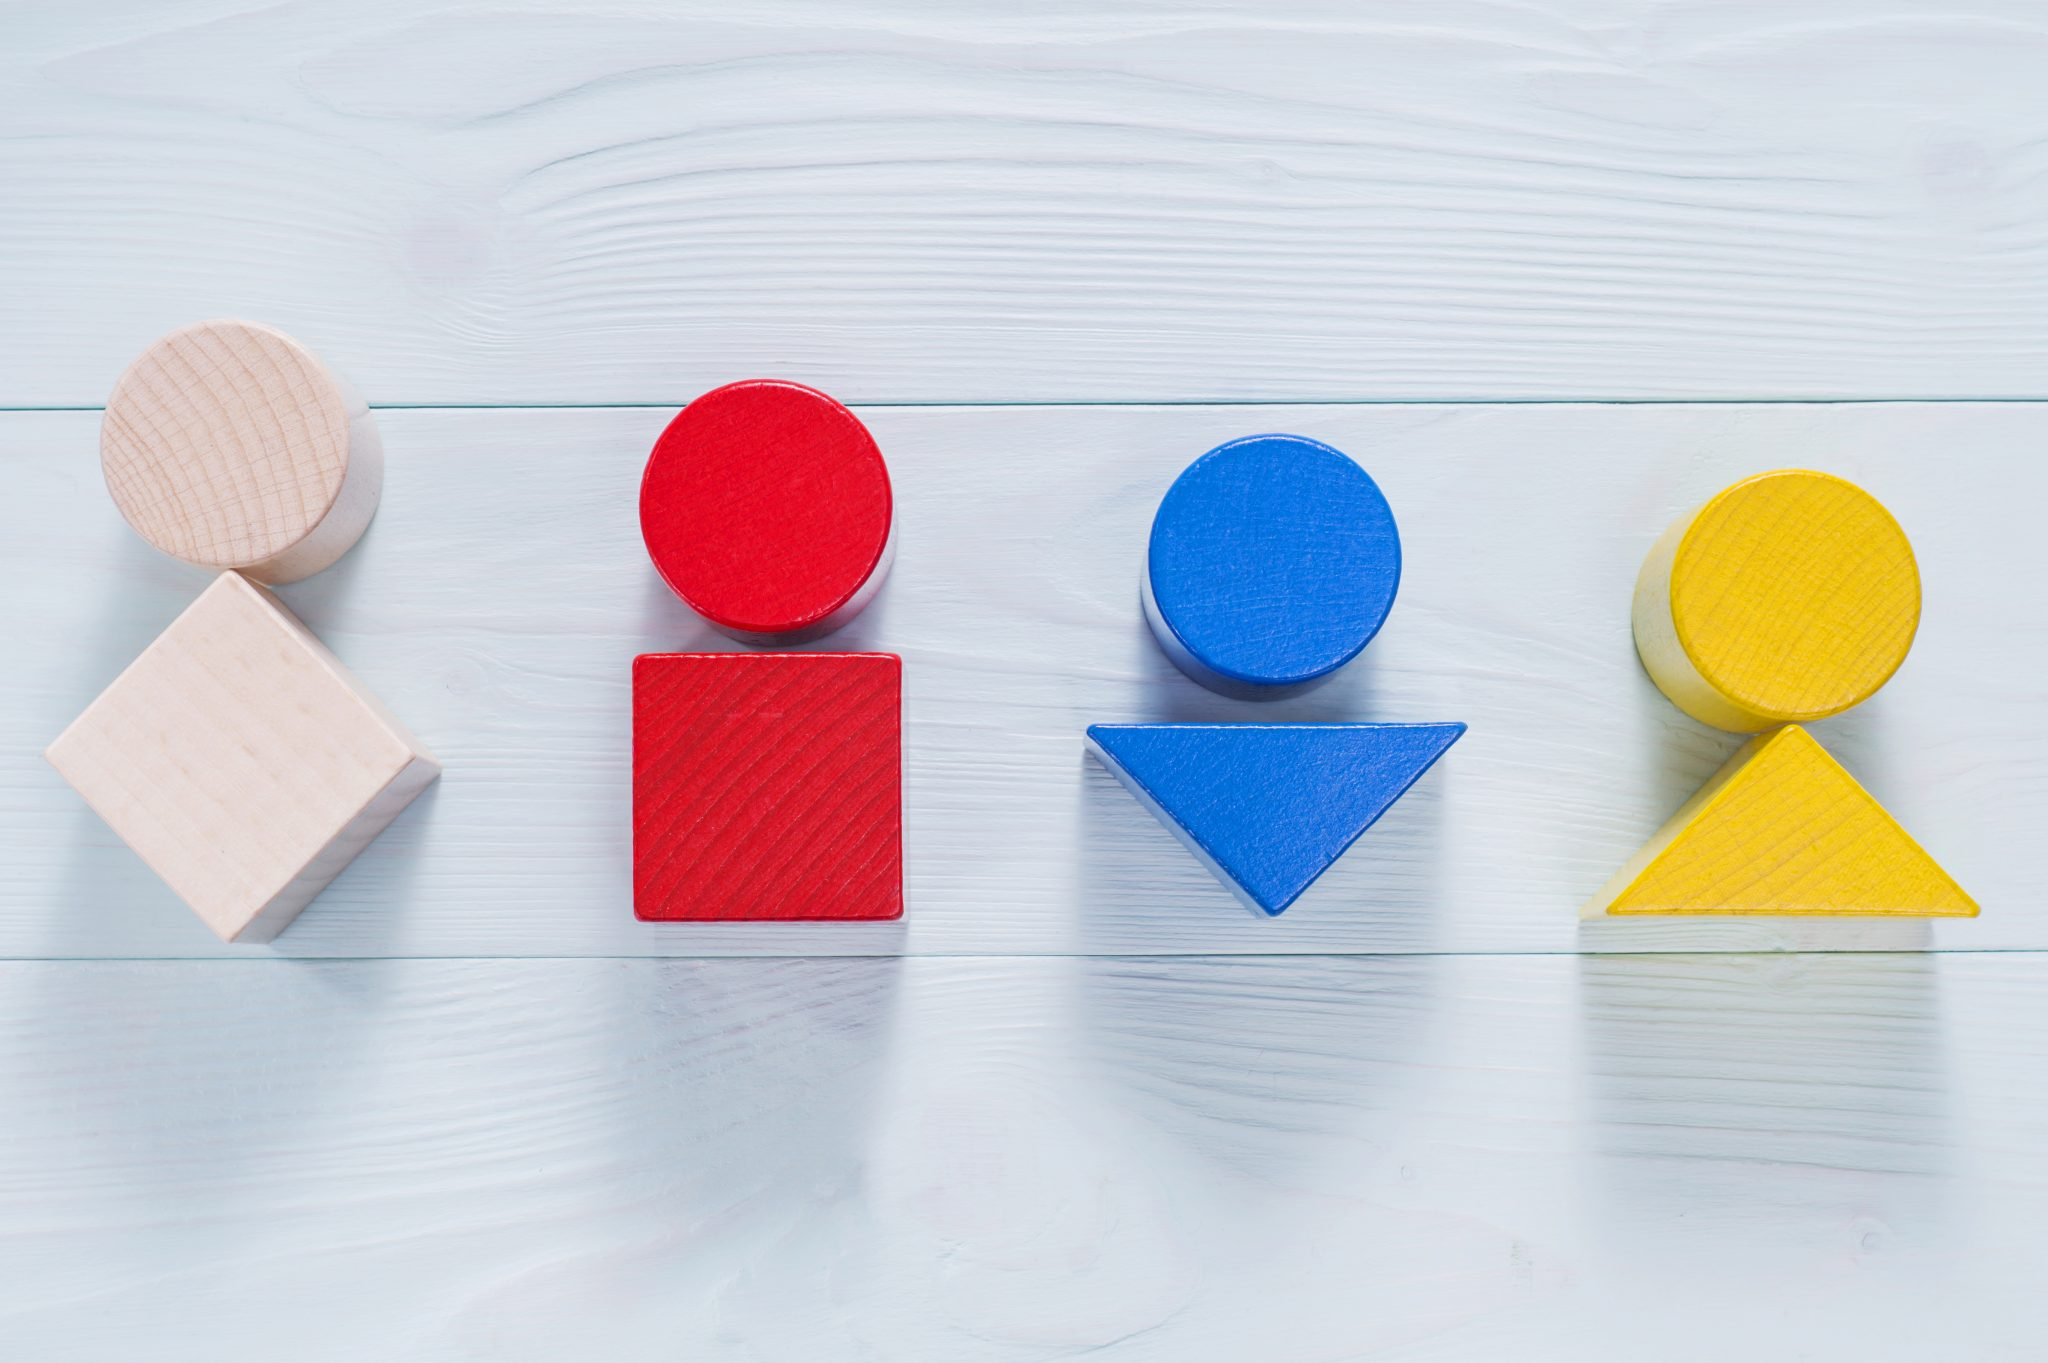 Wooden blocks, circle, triangle, square, arranged to depict body types.